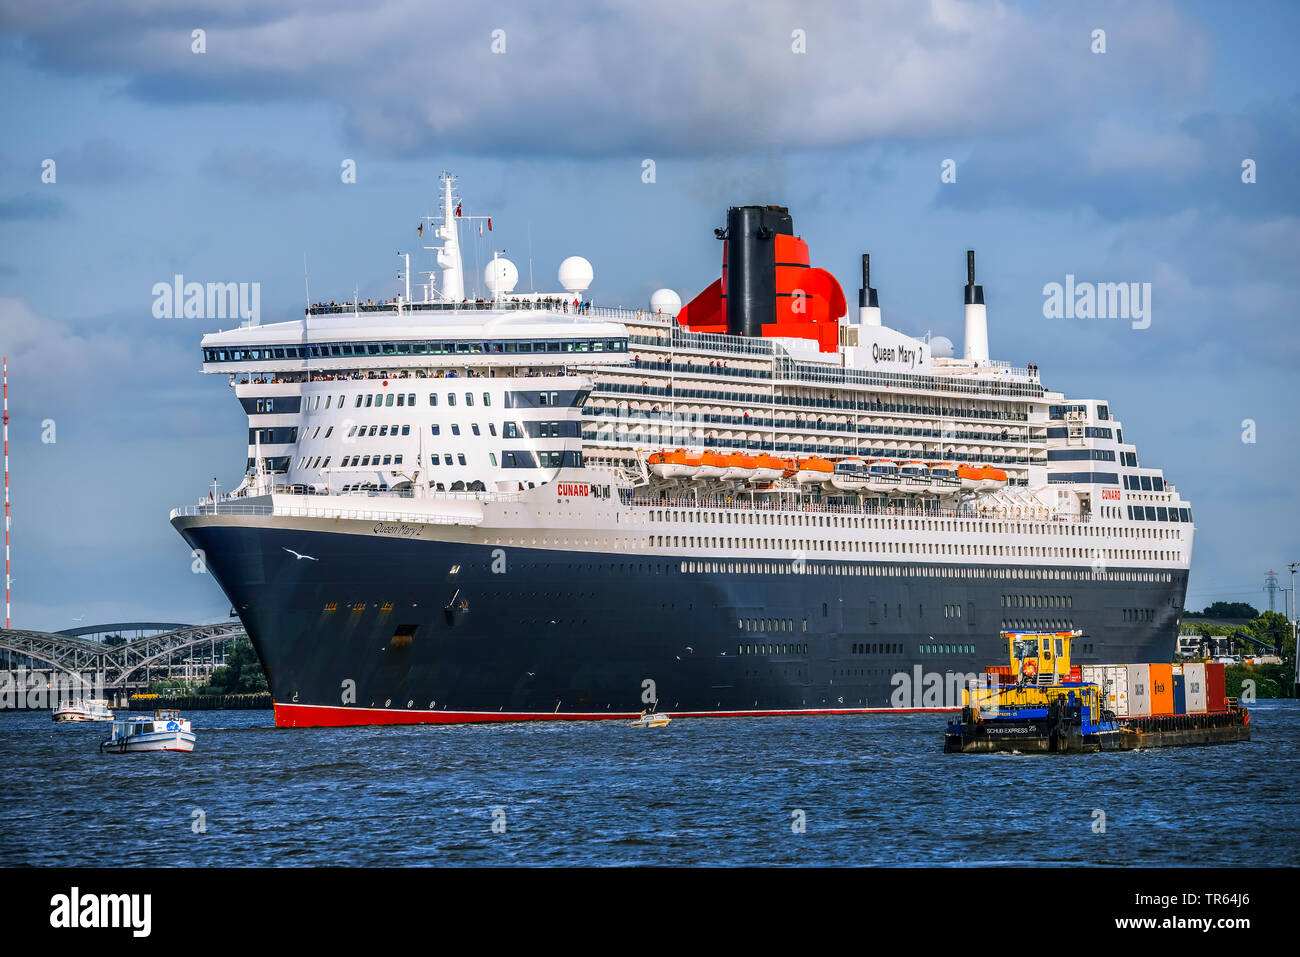 Cruiser ship Queen Mary 2 au port de Hambourg, Allemagne, Hambourg Banque D'Images